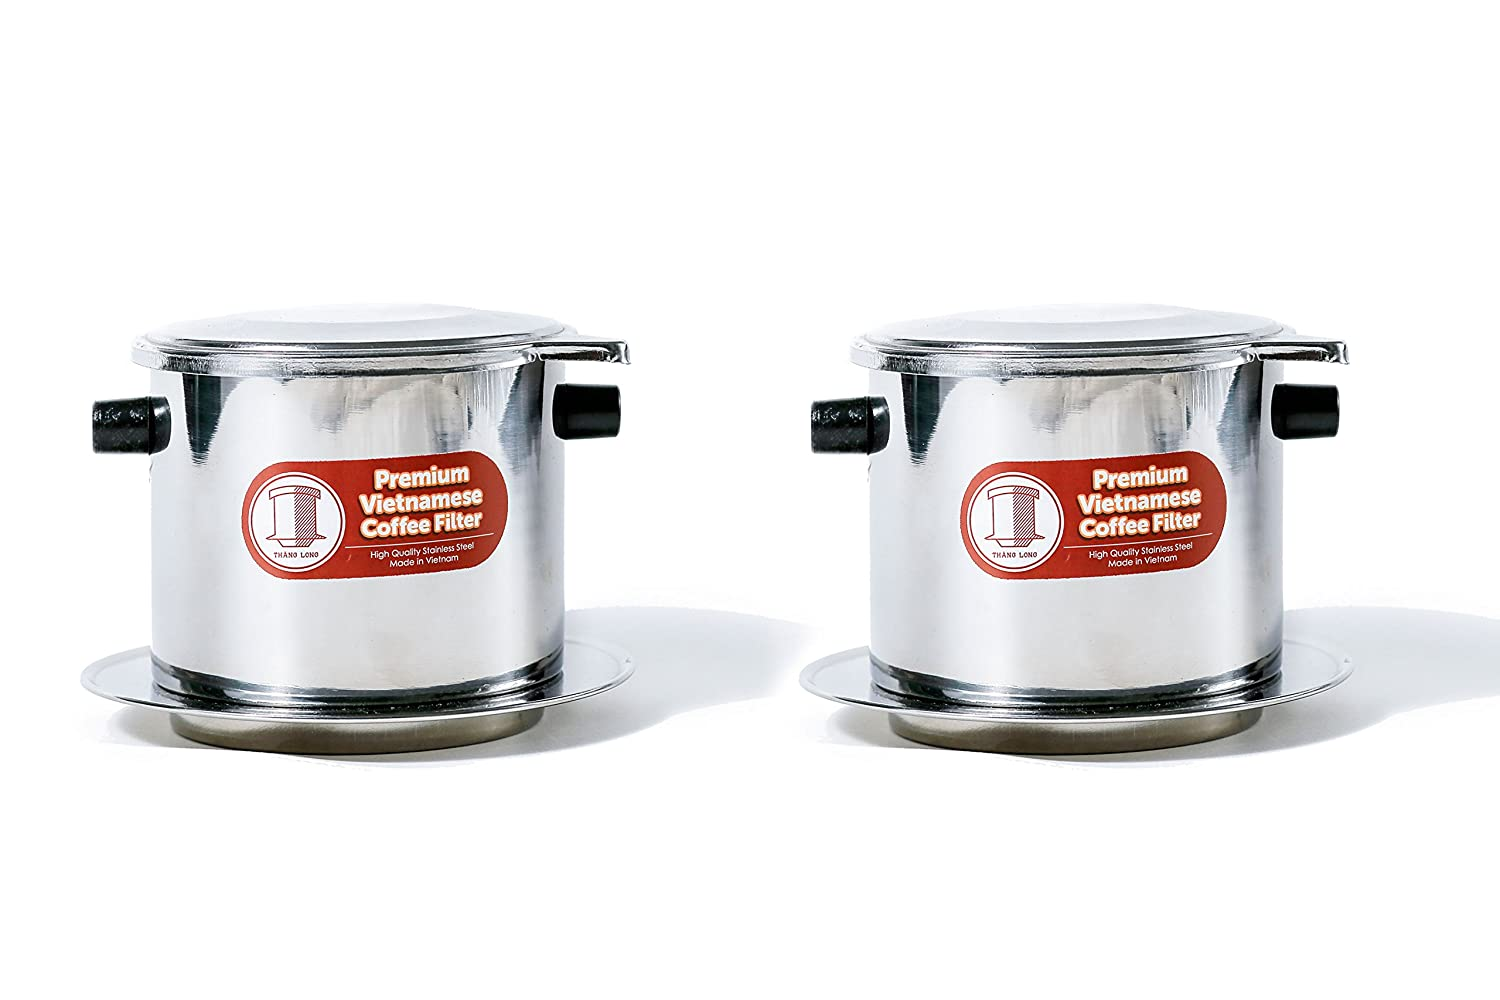 Set of 2 Vietnamese Traditional Coffee Phin Filter. Restaurant Quality Coffee- 15 Ounce